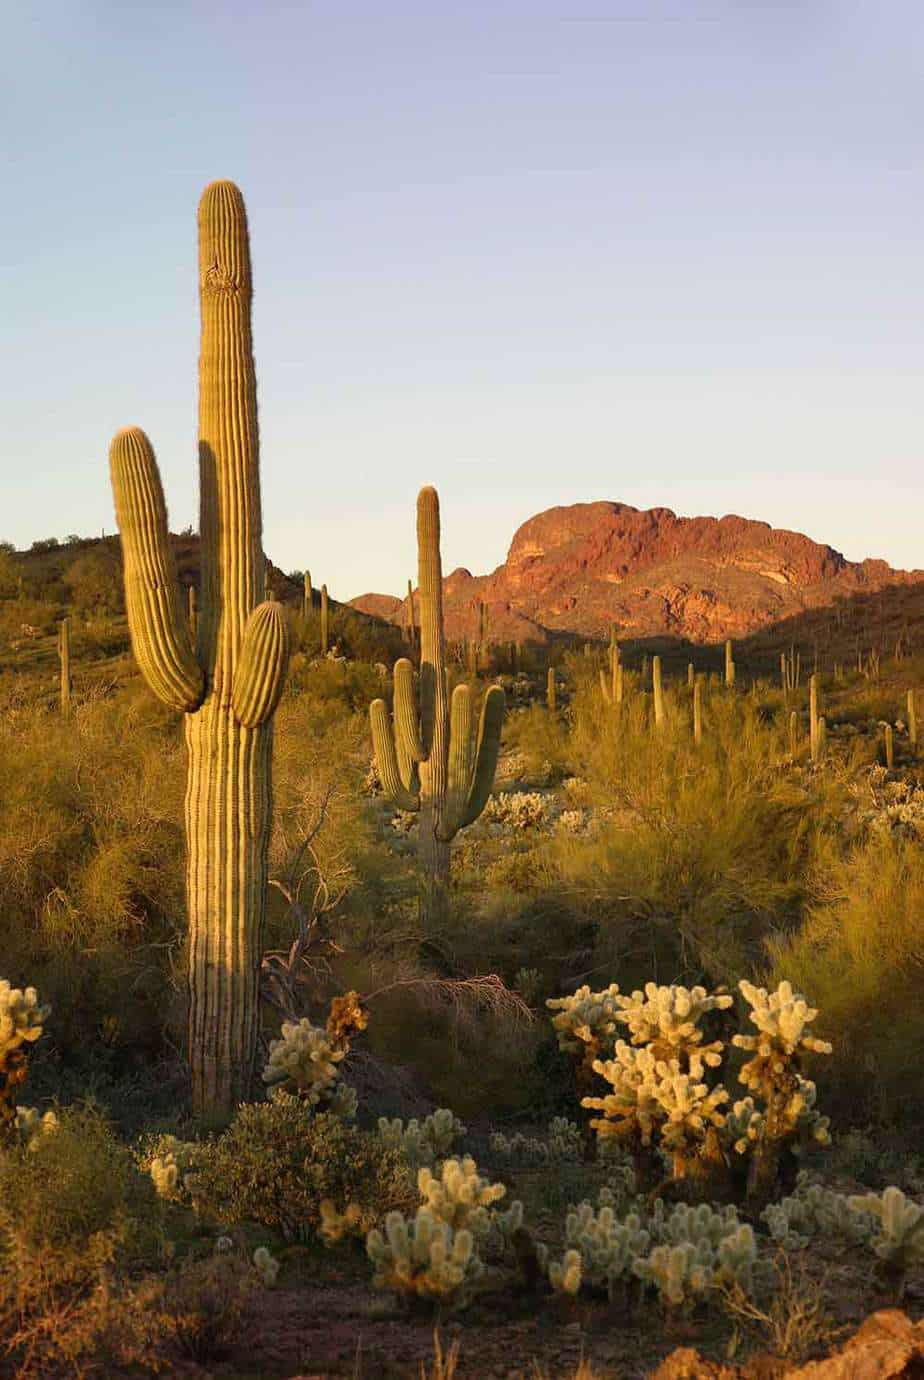 Camping In Arizona: 40 of the Best Campgrounds You Need To Visit 4